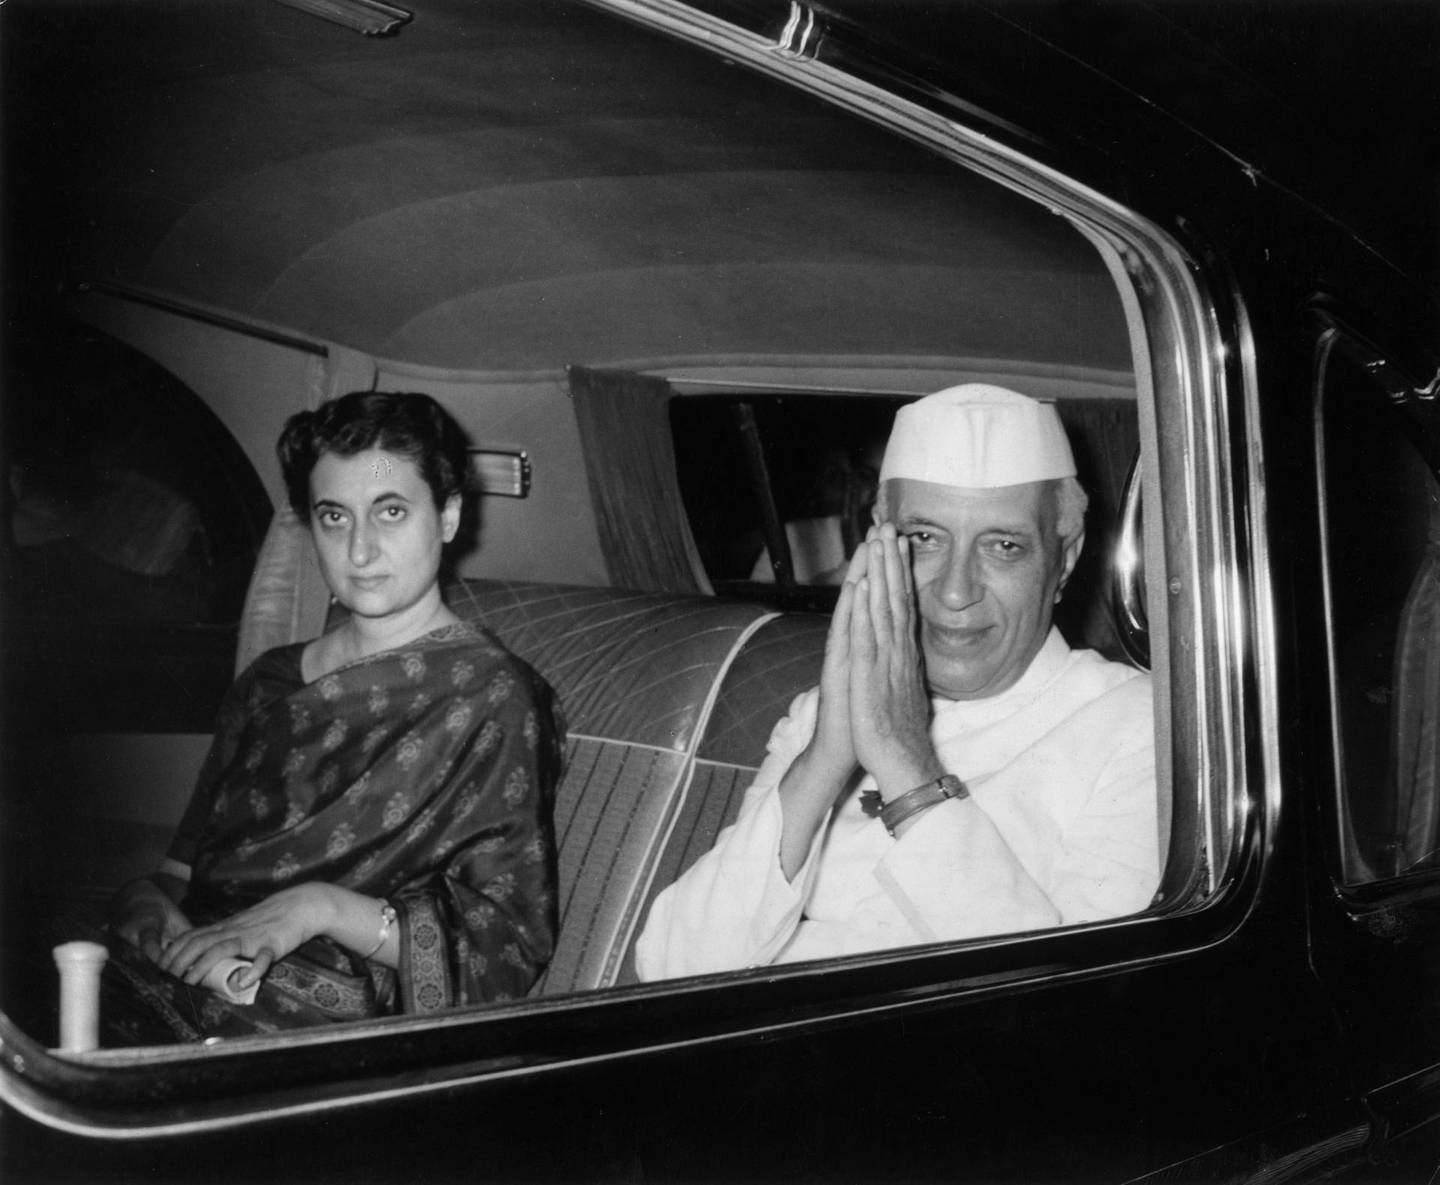 October 1961:  Indian prime minister Pandit Nehru (1889 - 1964) clasping his hands in salute while sitting with his daughter, Indira Gandhi, (born Indira Priyardarshini Nehru, 1917 - 1984) in the backseat of a car.  (Photo by Hulton Archive/Getty Images)